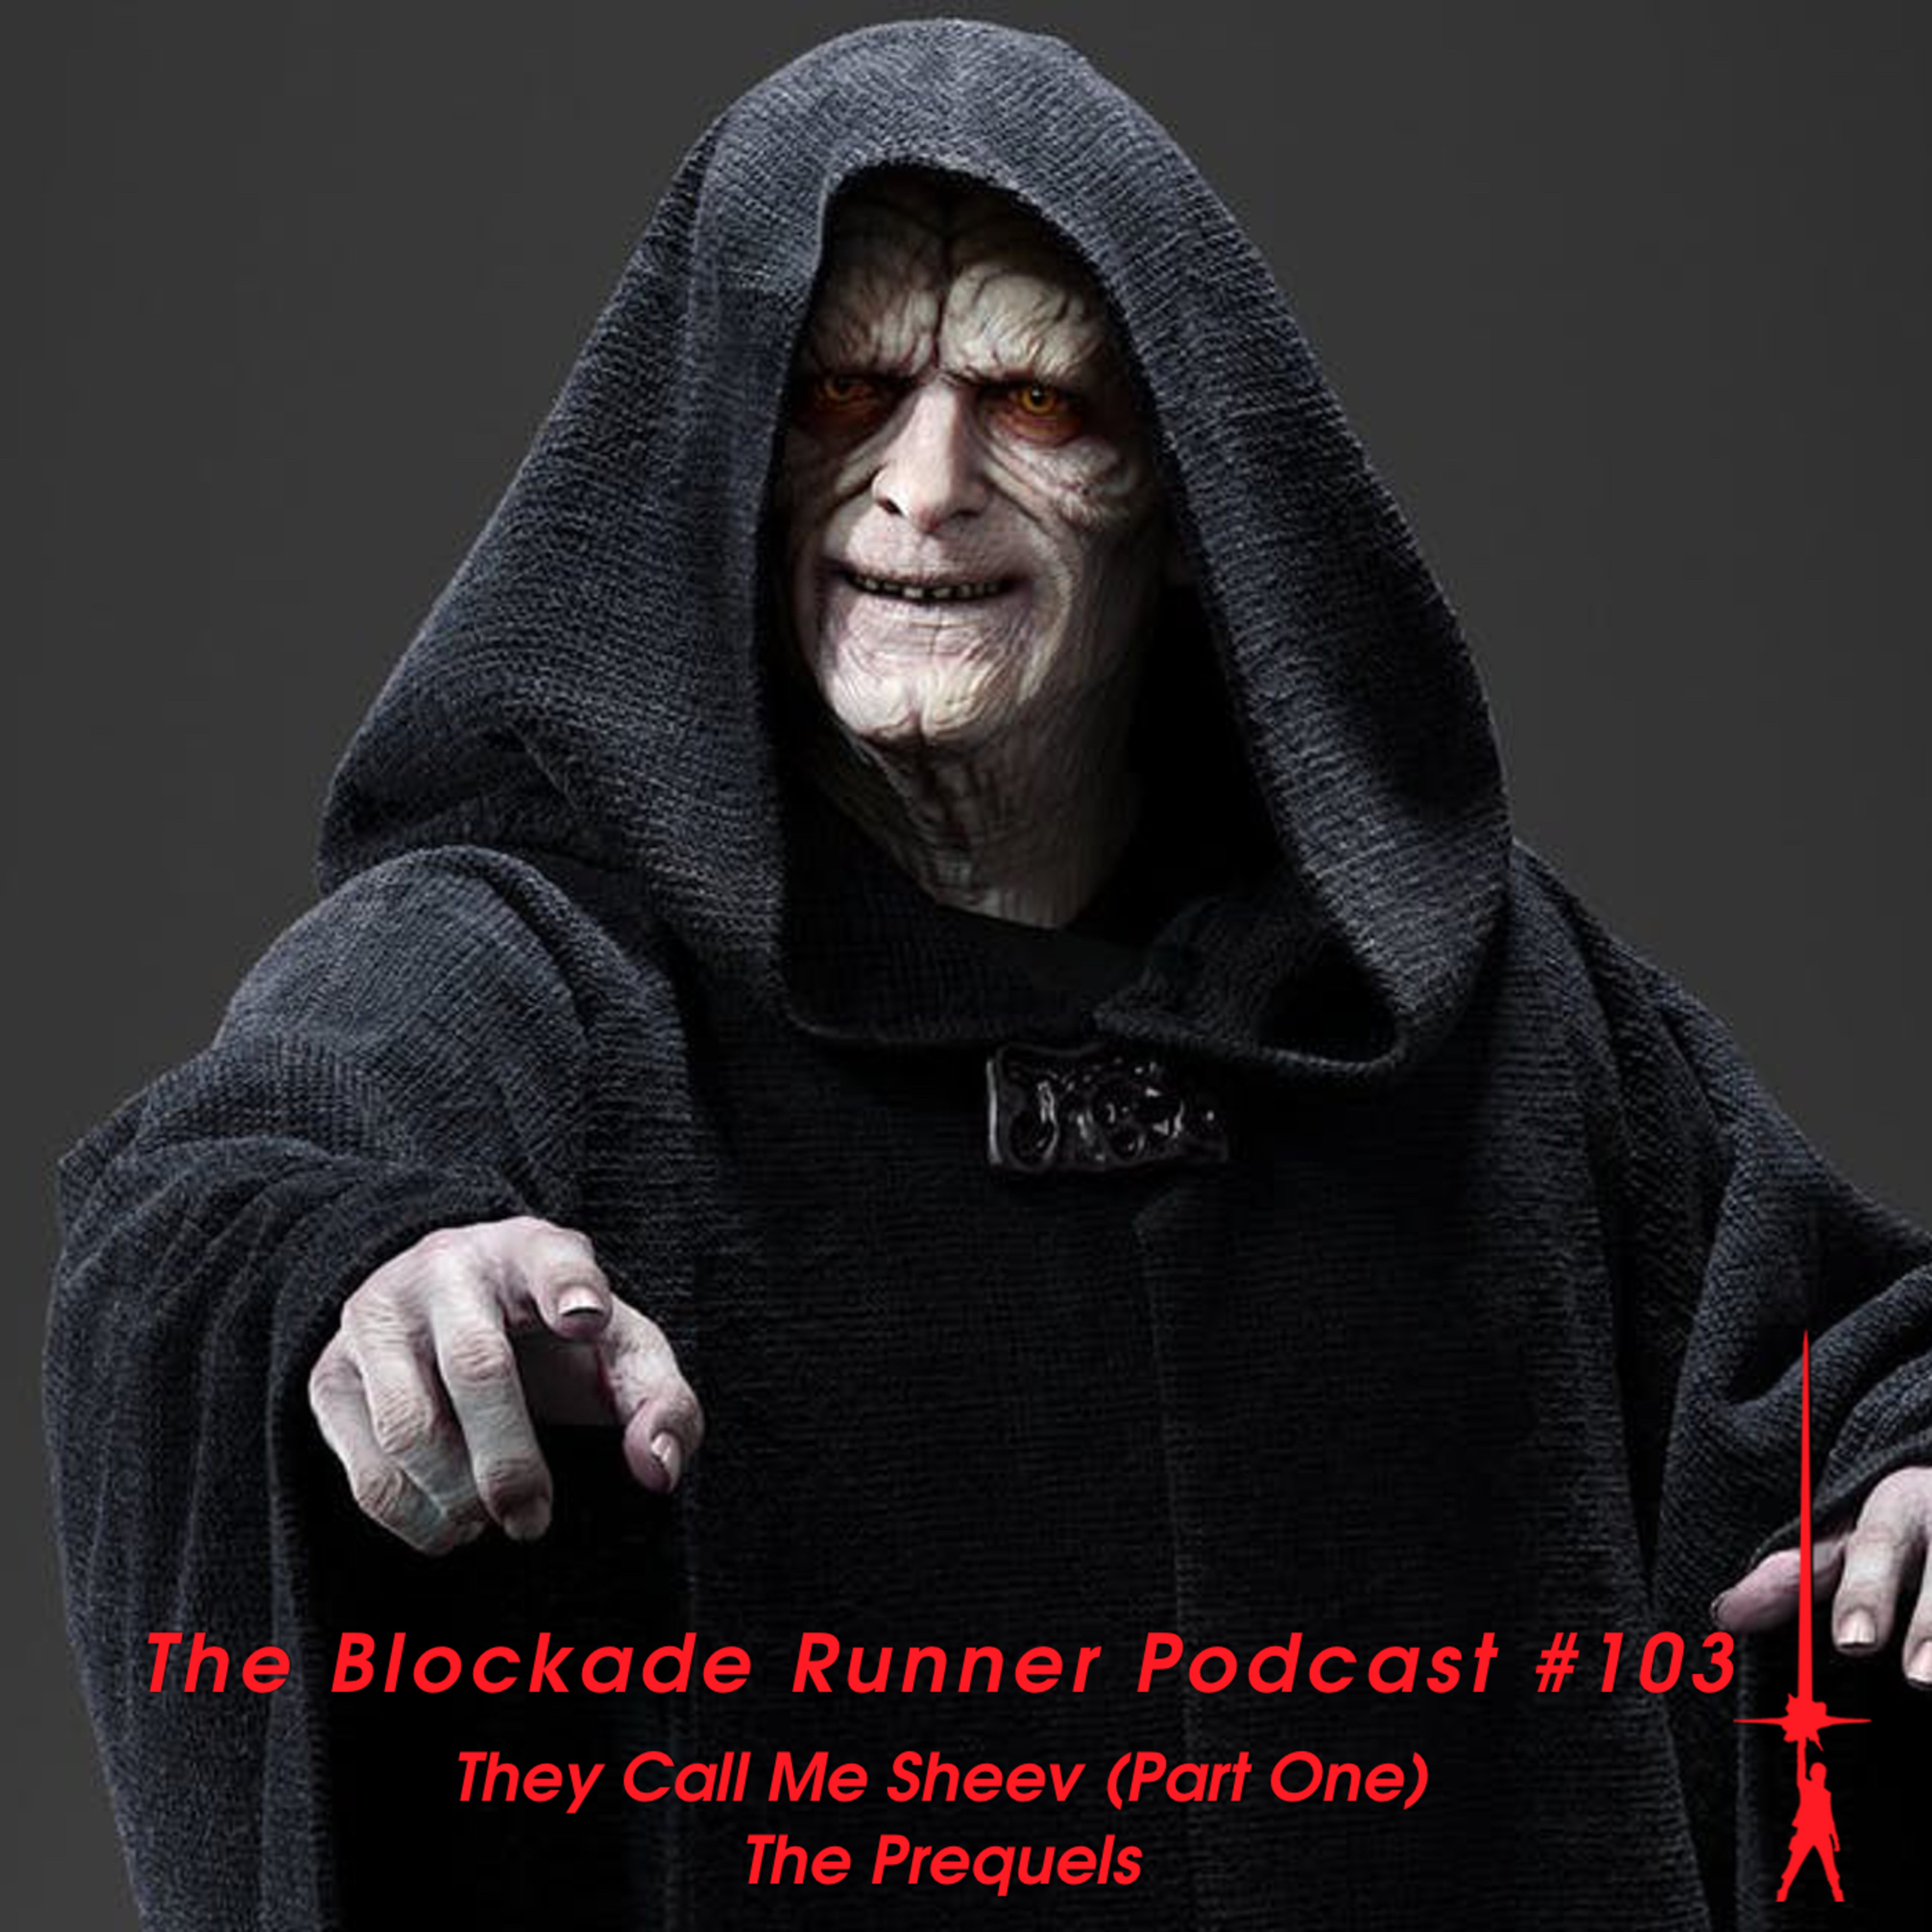 They Call Me Sheev (Part One): The Prequels - The Blockade Runner Podcast #103